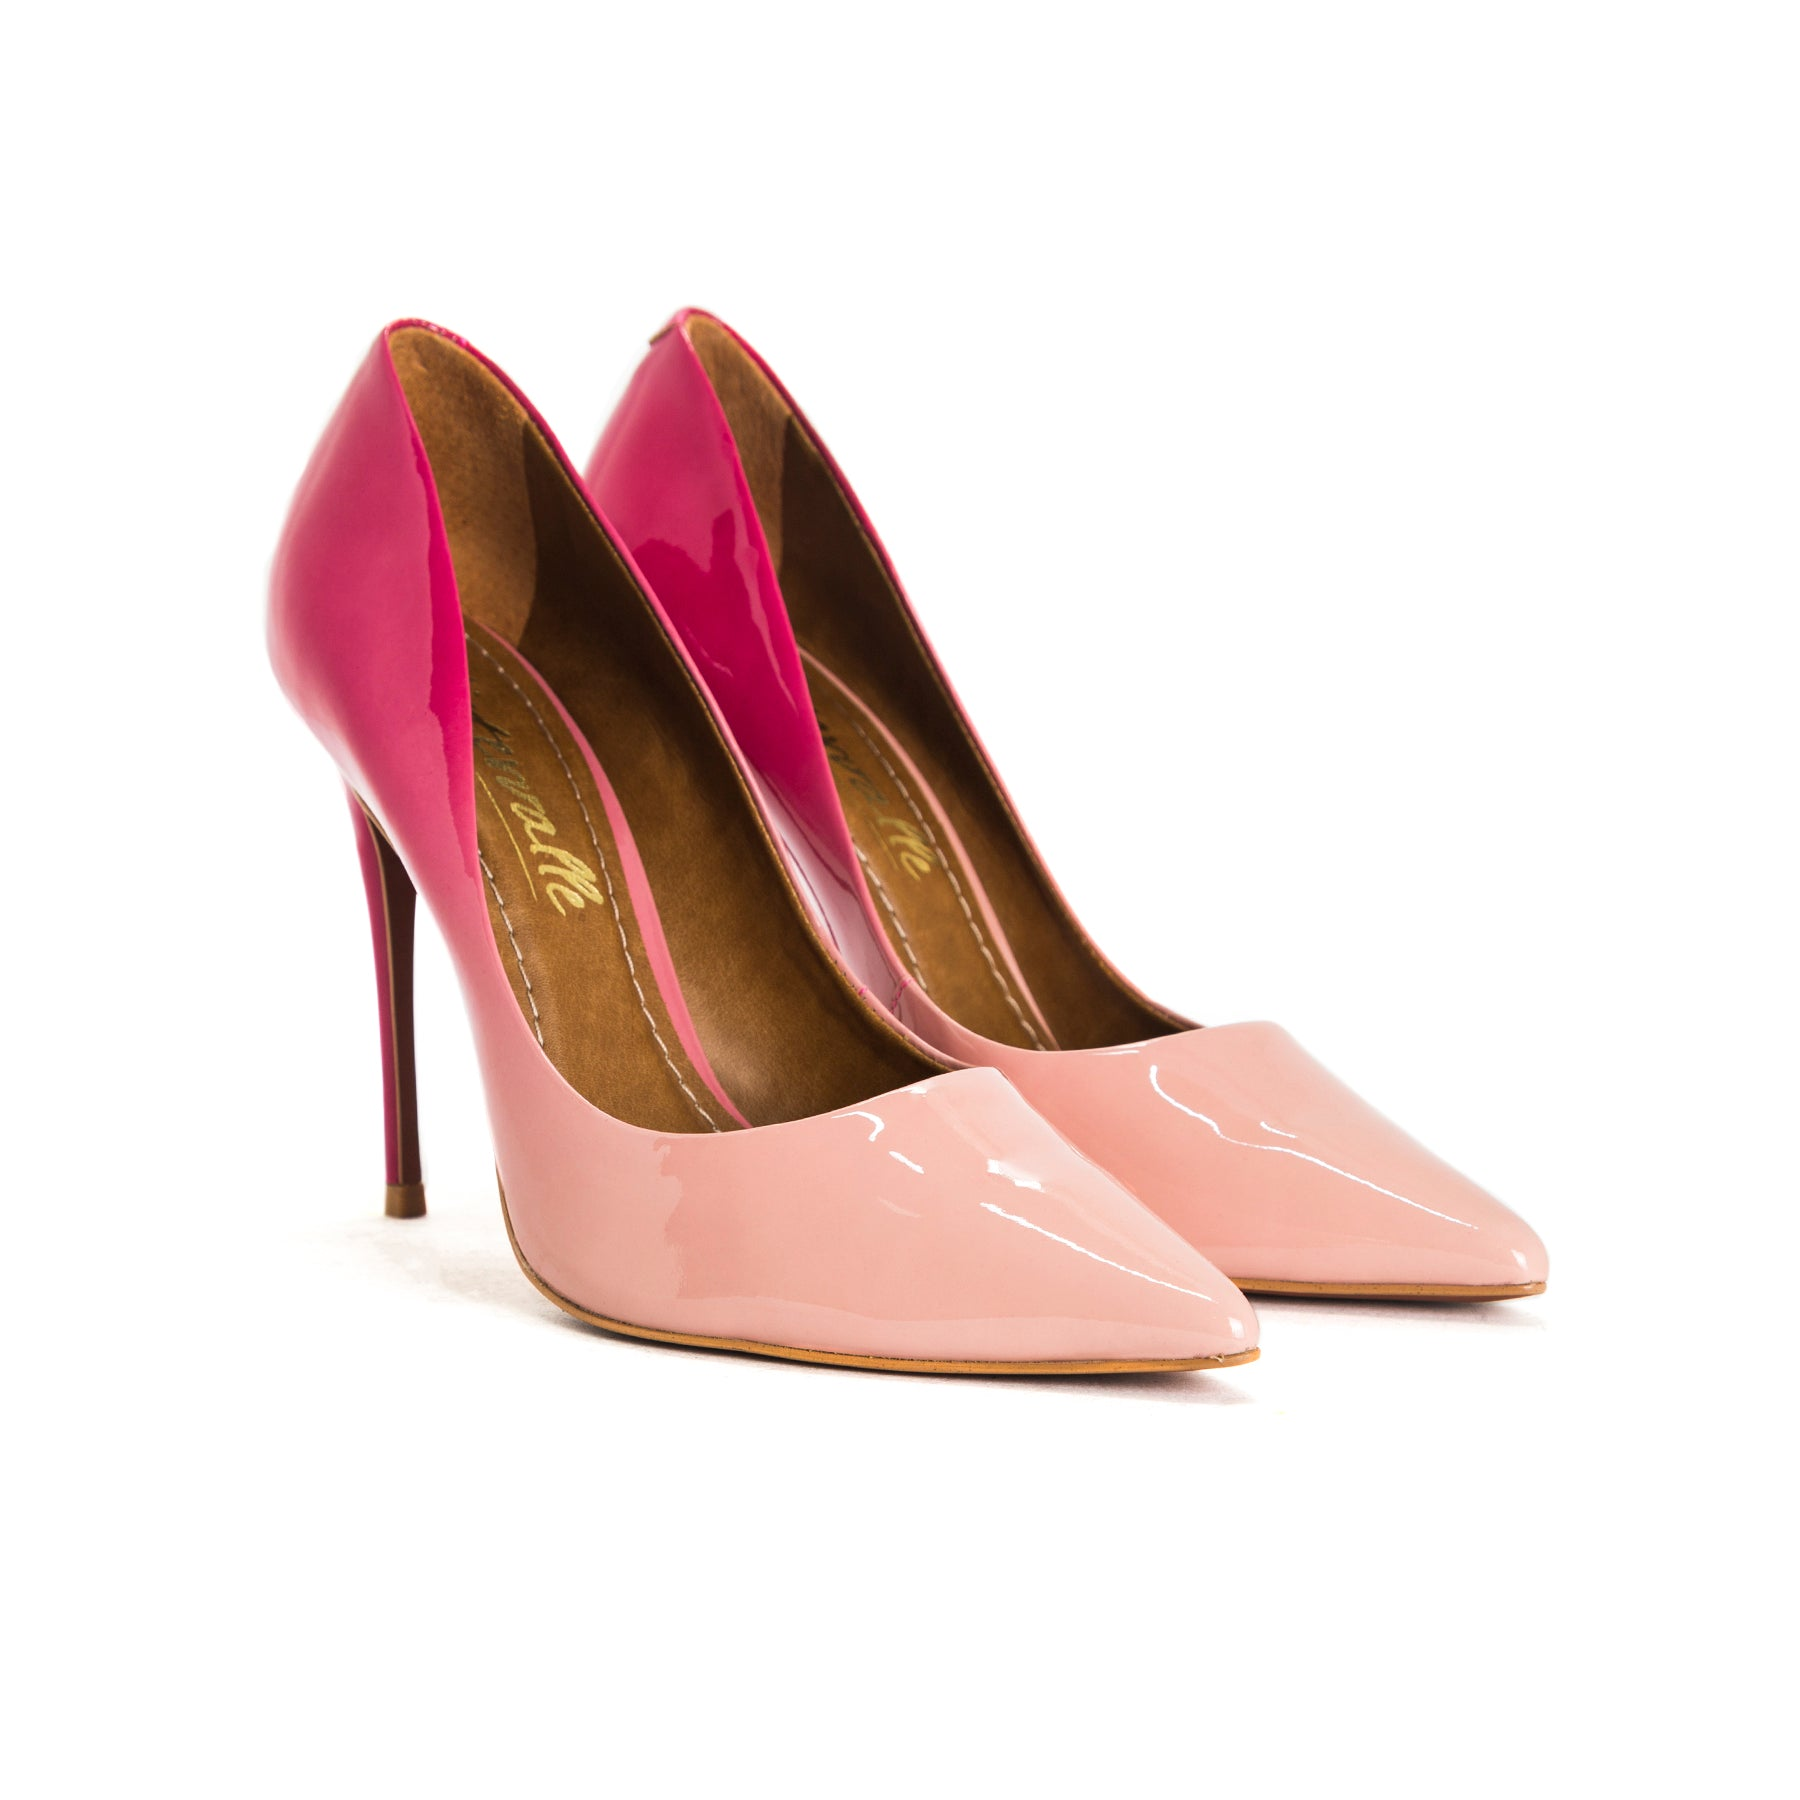 Teeva Pink/Nude Degrade Pumps